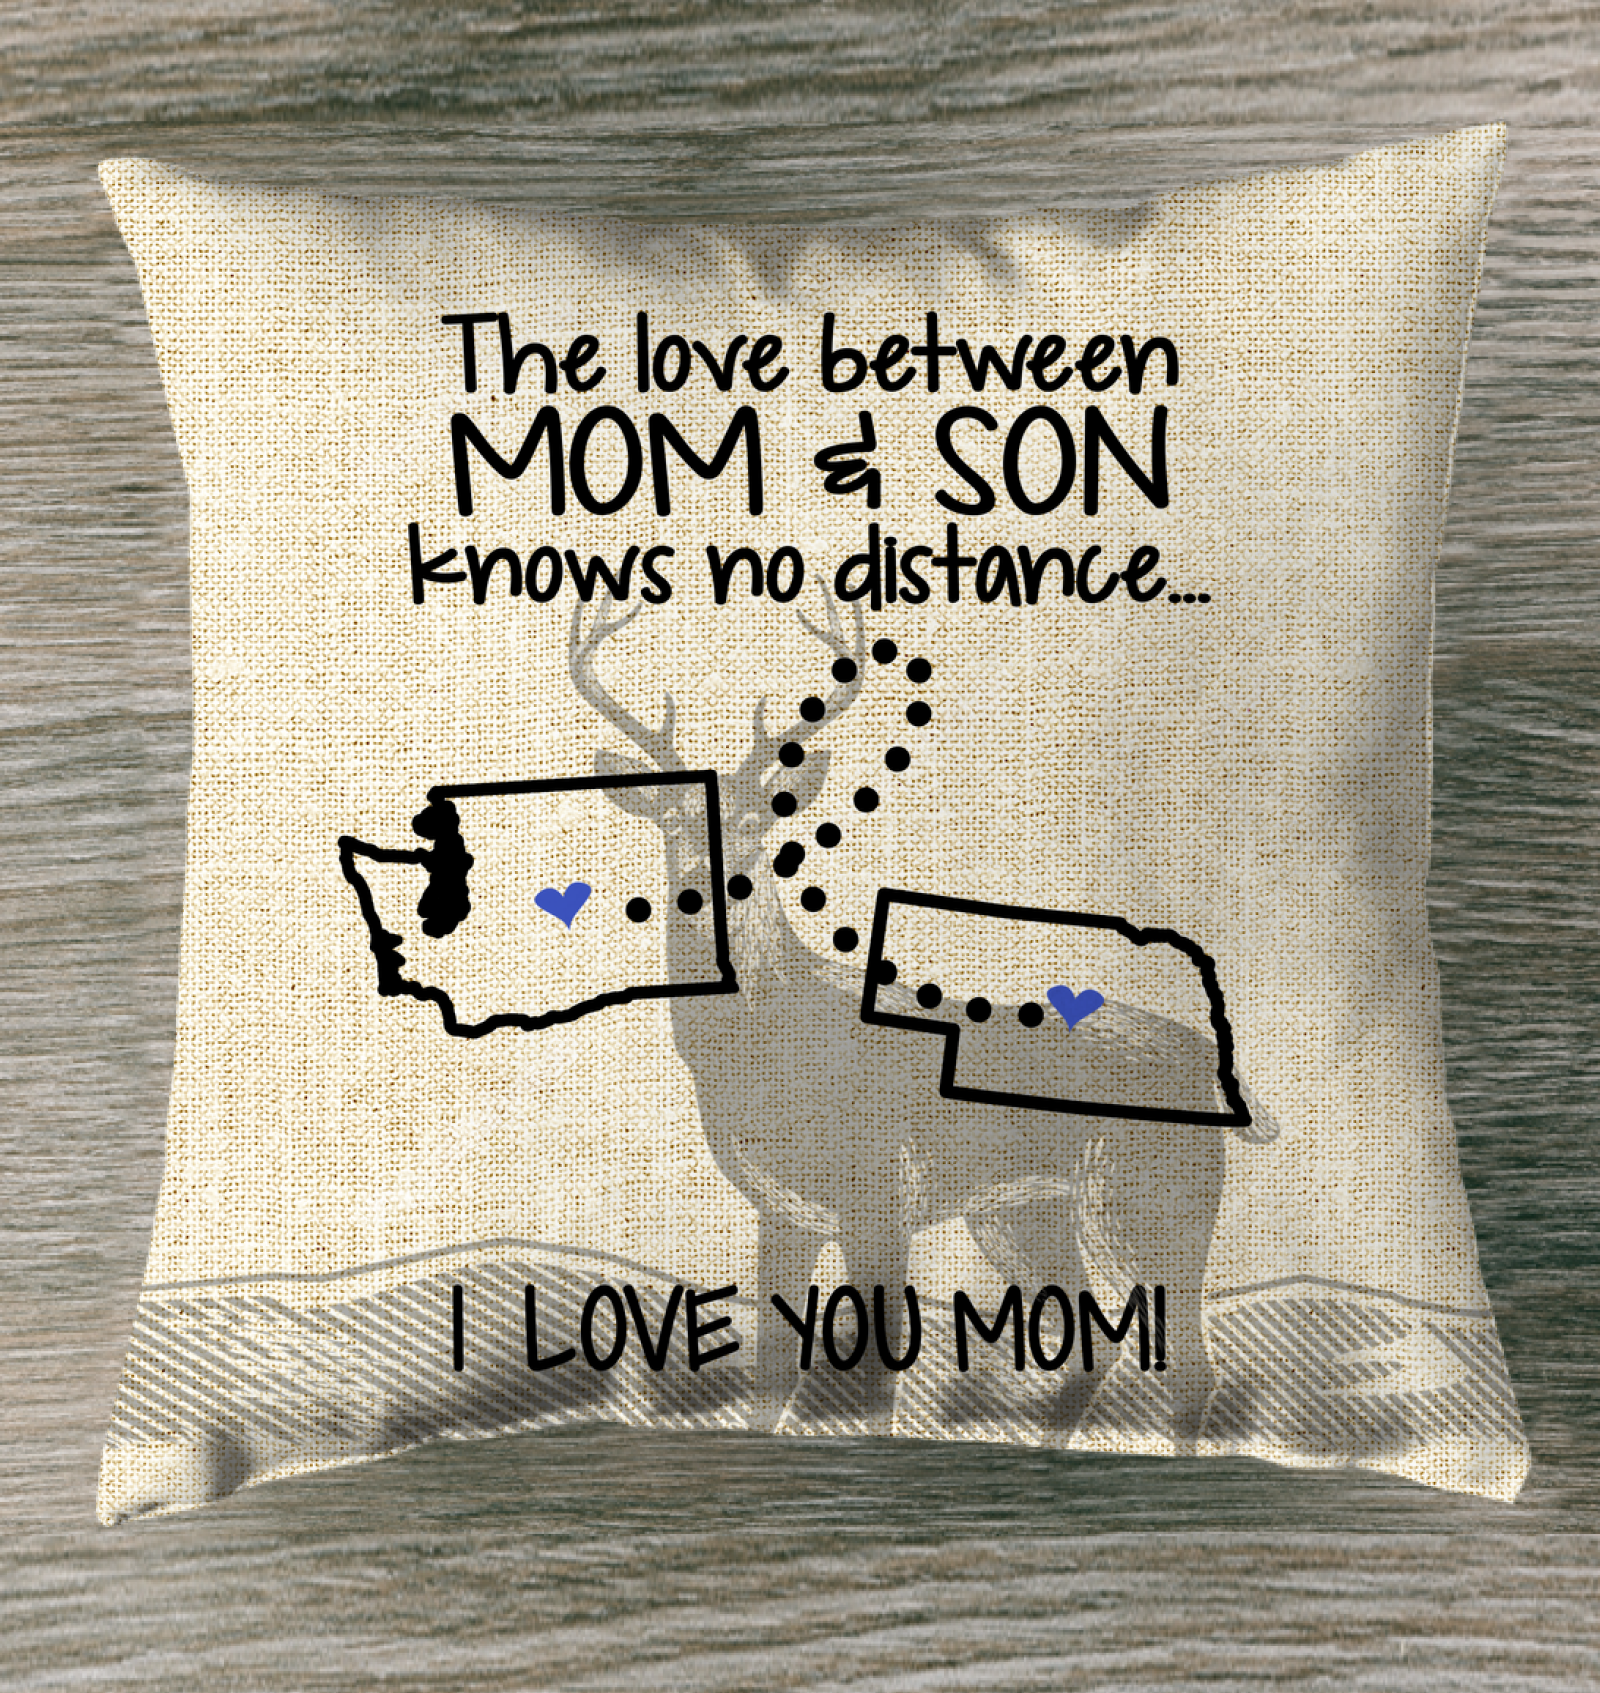 NEBRASKA WASHINGTON THE LOVE MOM AND SON KNOWS NO DISTANCE